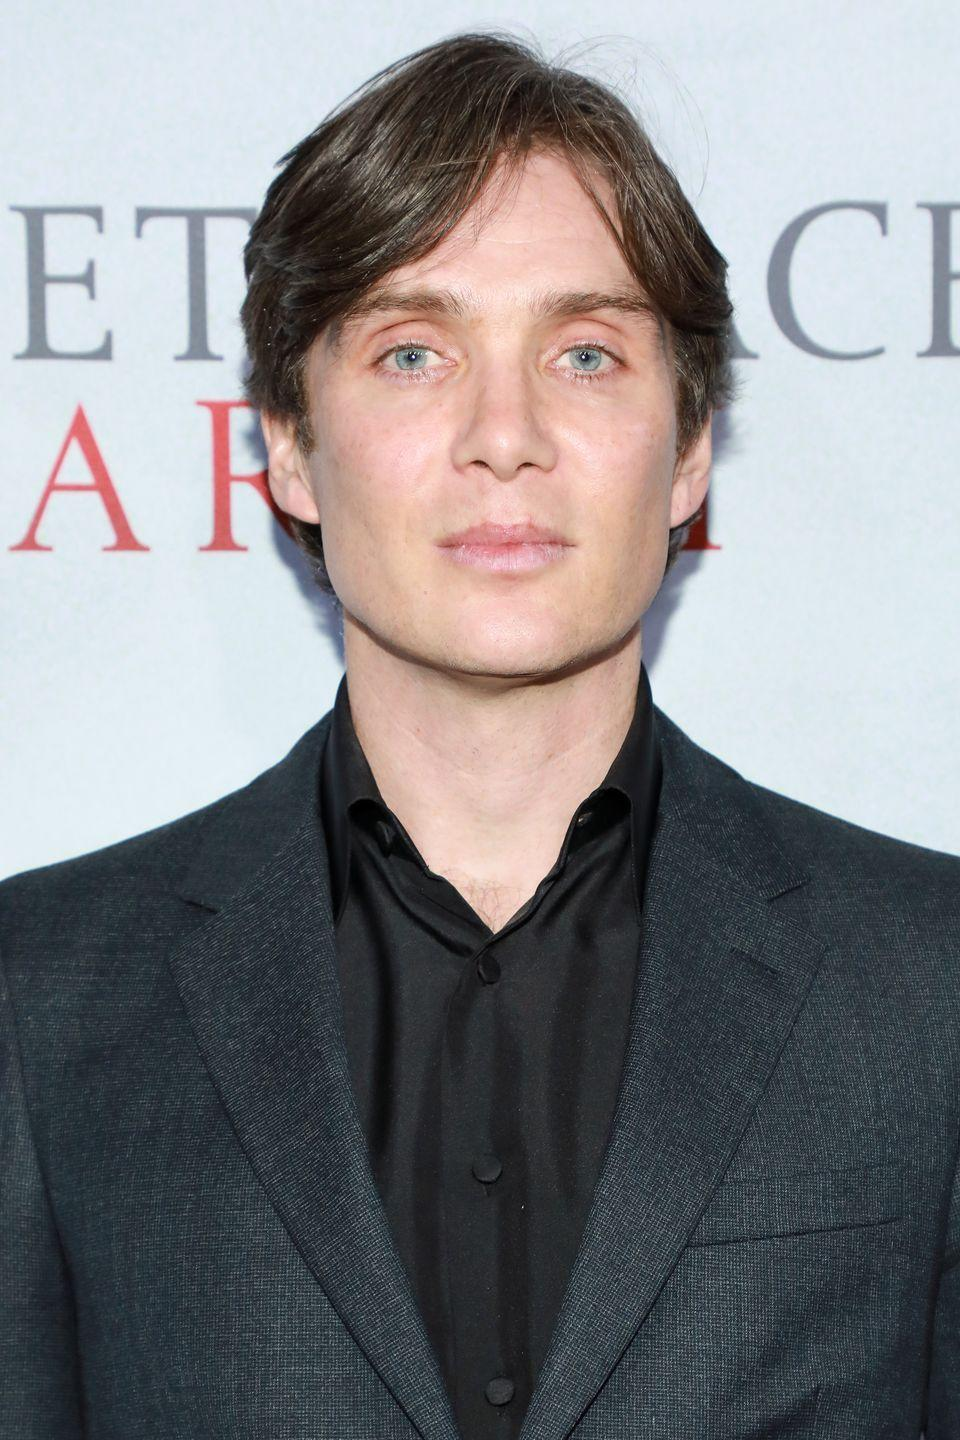 """<p><strong>The role: </strong><a href=""""https://www.cbr.com/dark-knight-trilogy-cillian-murphy-auditioned-batman/"""" rel=""""nofollow noopener"""" target=""""_blank"""" data-ylk=""""slk:Batman"""" class=""""link rapid-noclick-resp"""">Batman</a> in <em>The Dark Knight</em></p><p><strong>Who *actually* played it:</strong> Christian Bale</p><p><strong>The role they played instead: </strong>Scarecrow</p><p>Murphy said he got so far into the audition process for Batman that he was able to try on the iconic Batsuit. But he added that he knew he wasn't going to get the role, saying it was """"obvious"""" that it was going to Bale. </p>"""